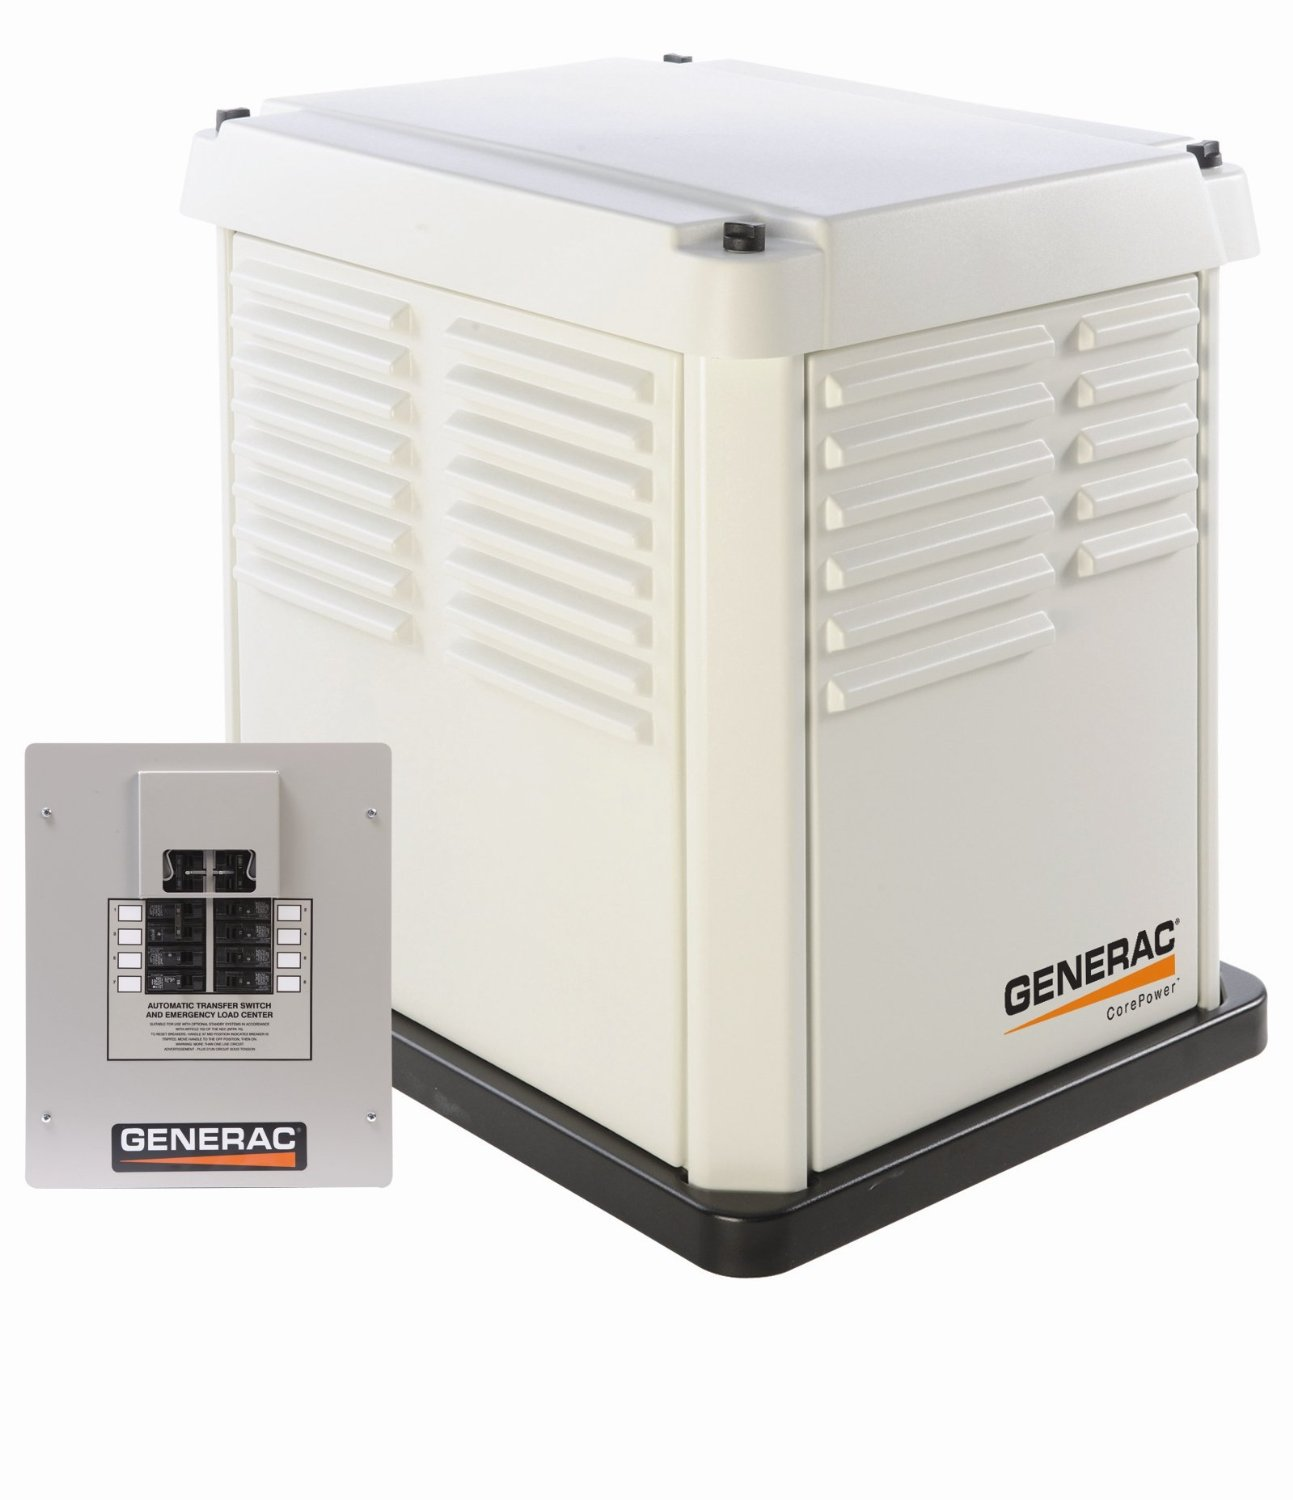 Generac CorePower Series 5837